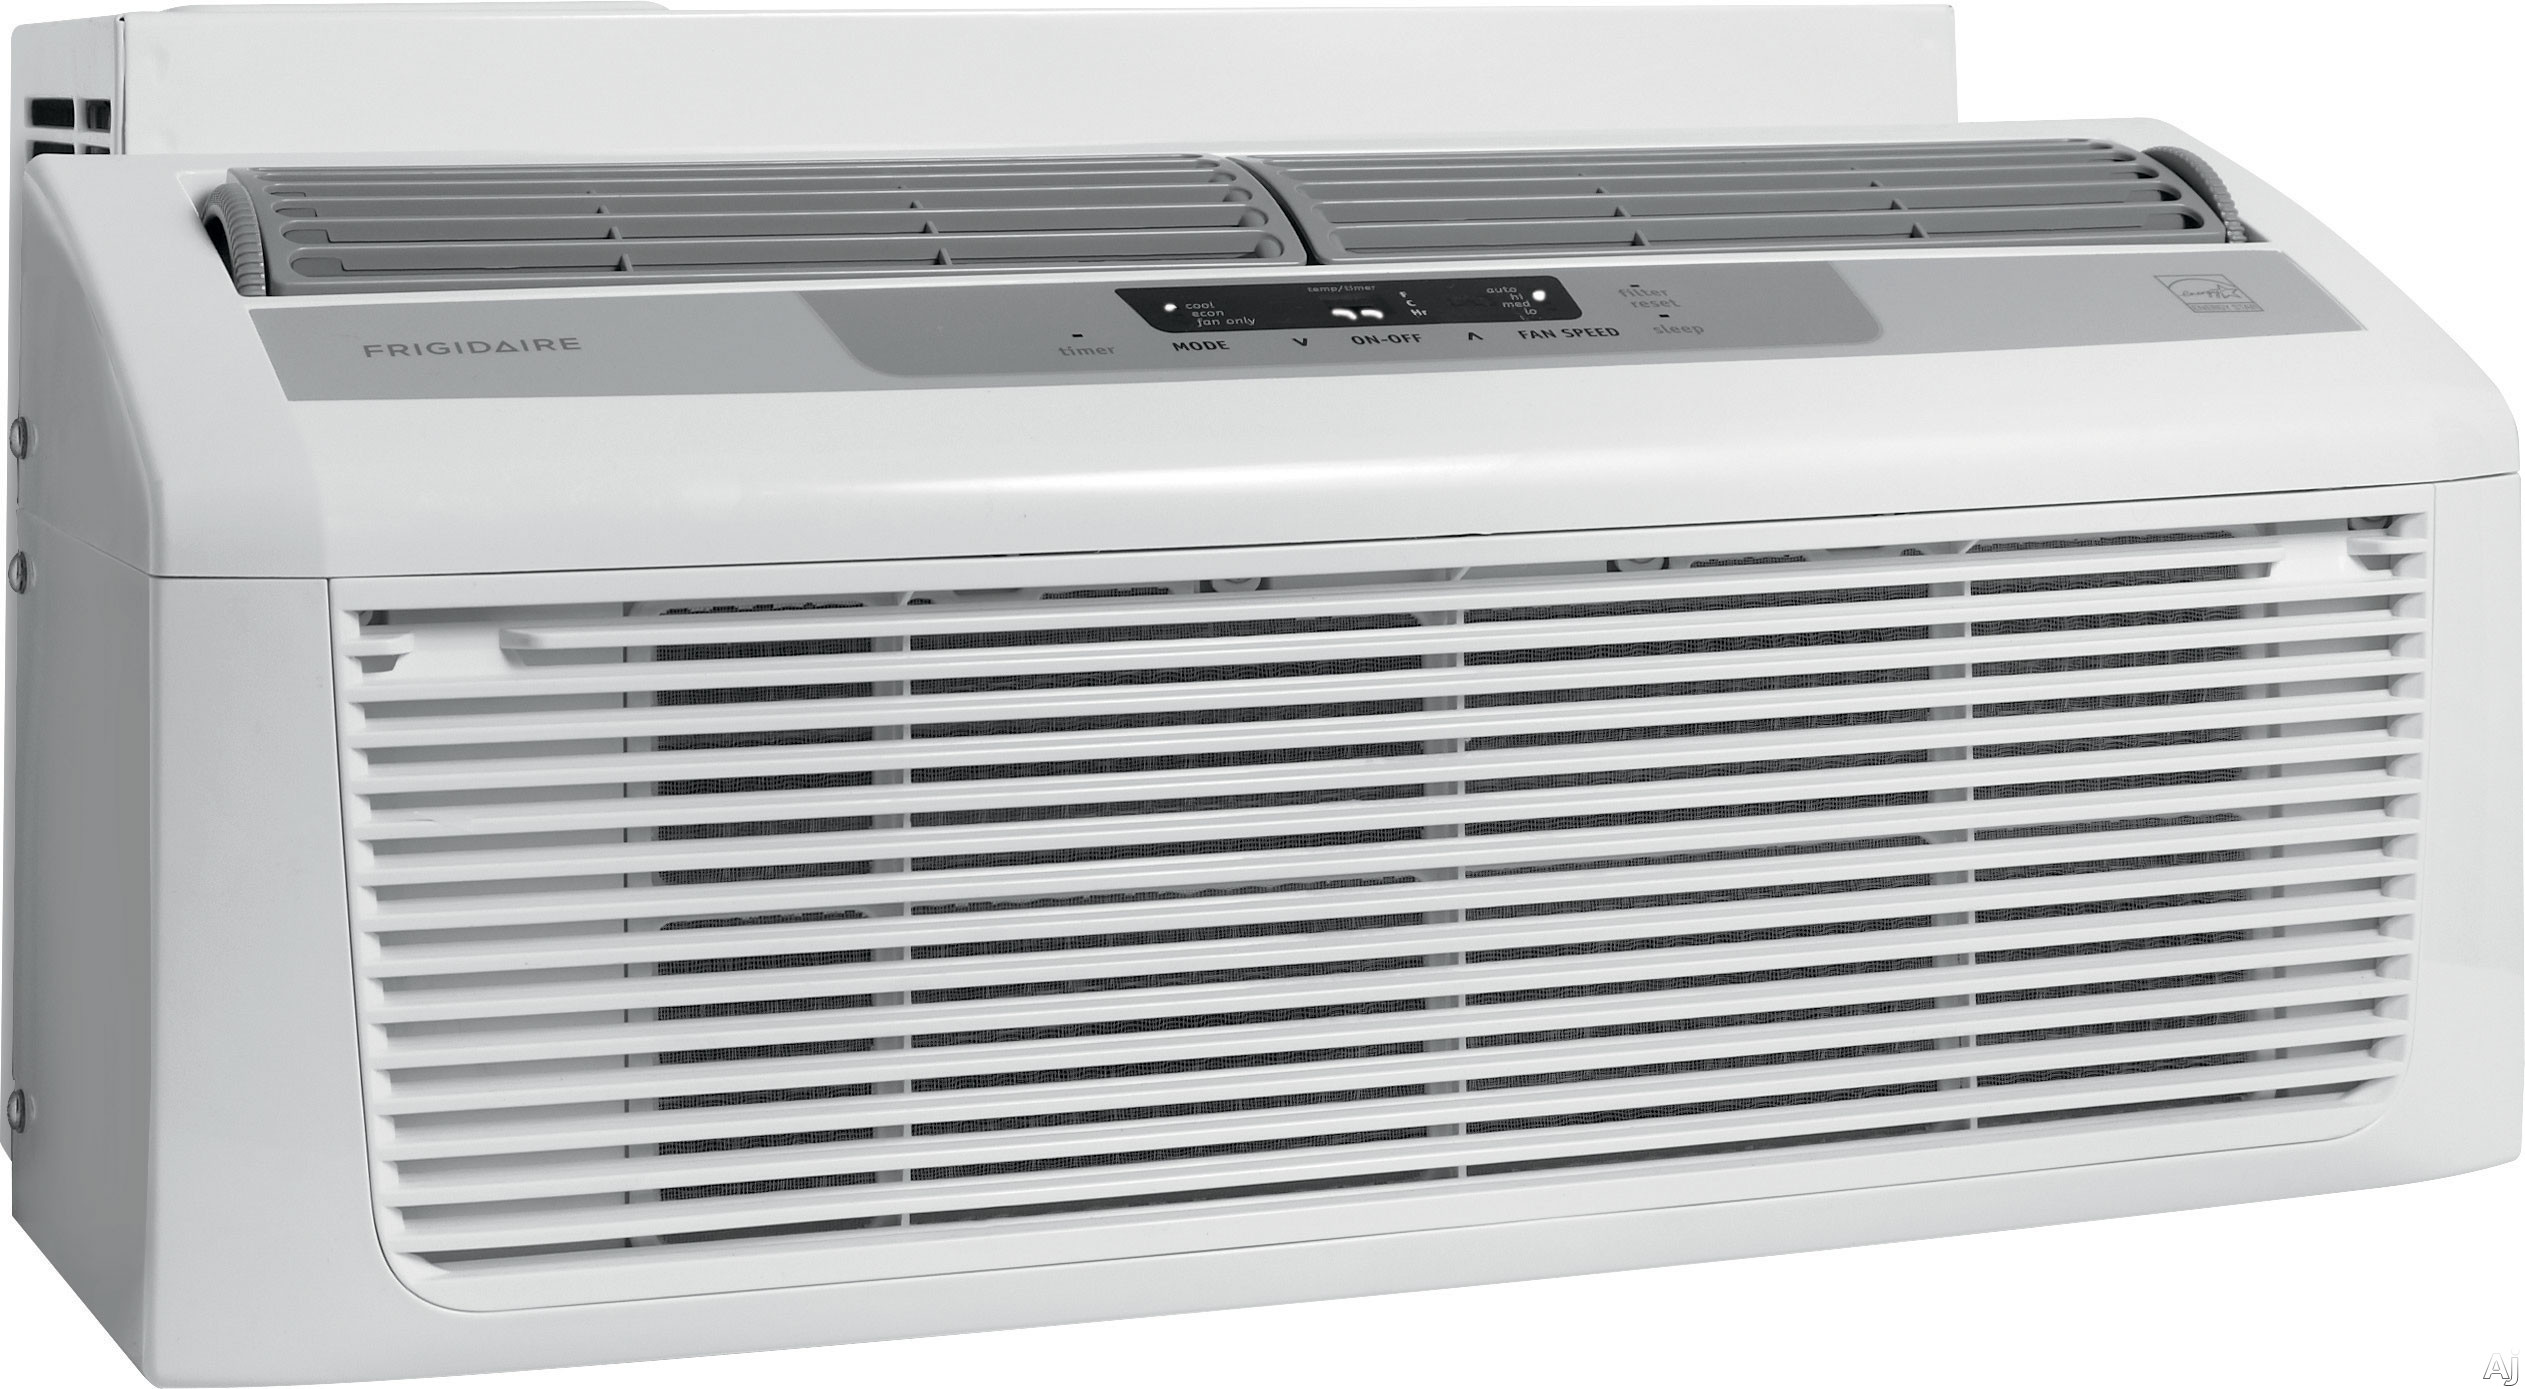 Home Air Conditioners Room Air Conditioners FFRL0633Q1 #36383A